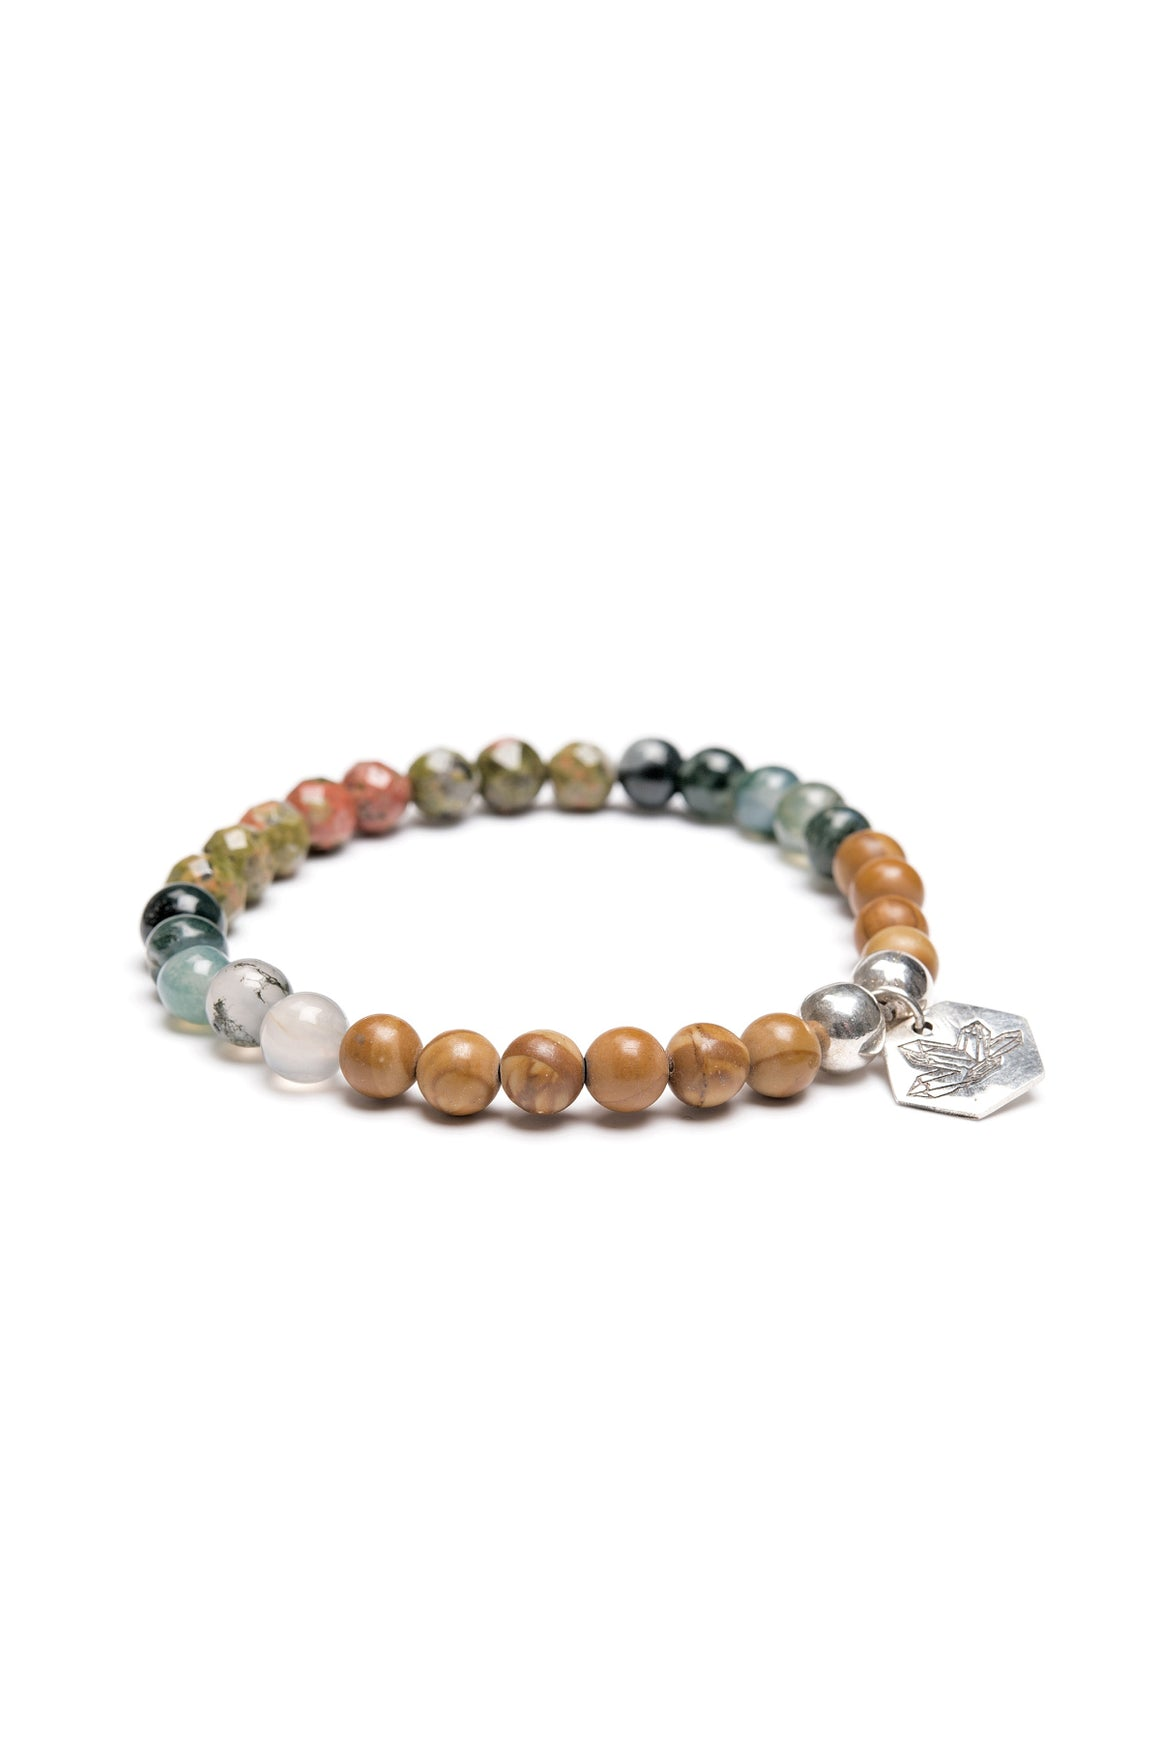 Healing Intention Bracelet